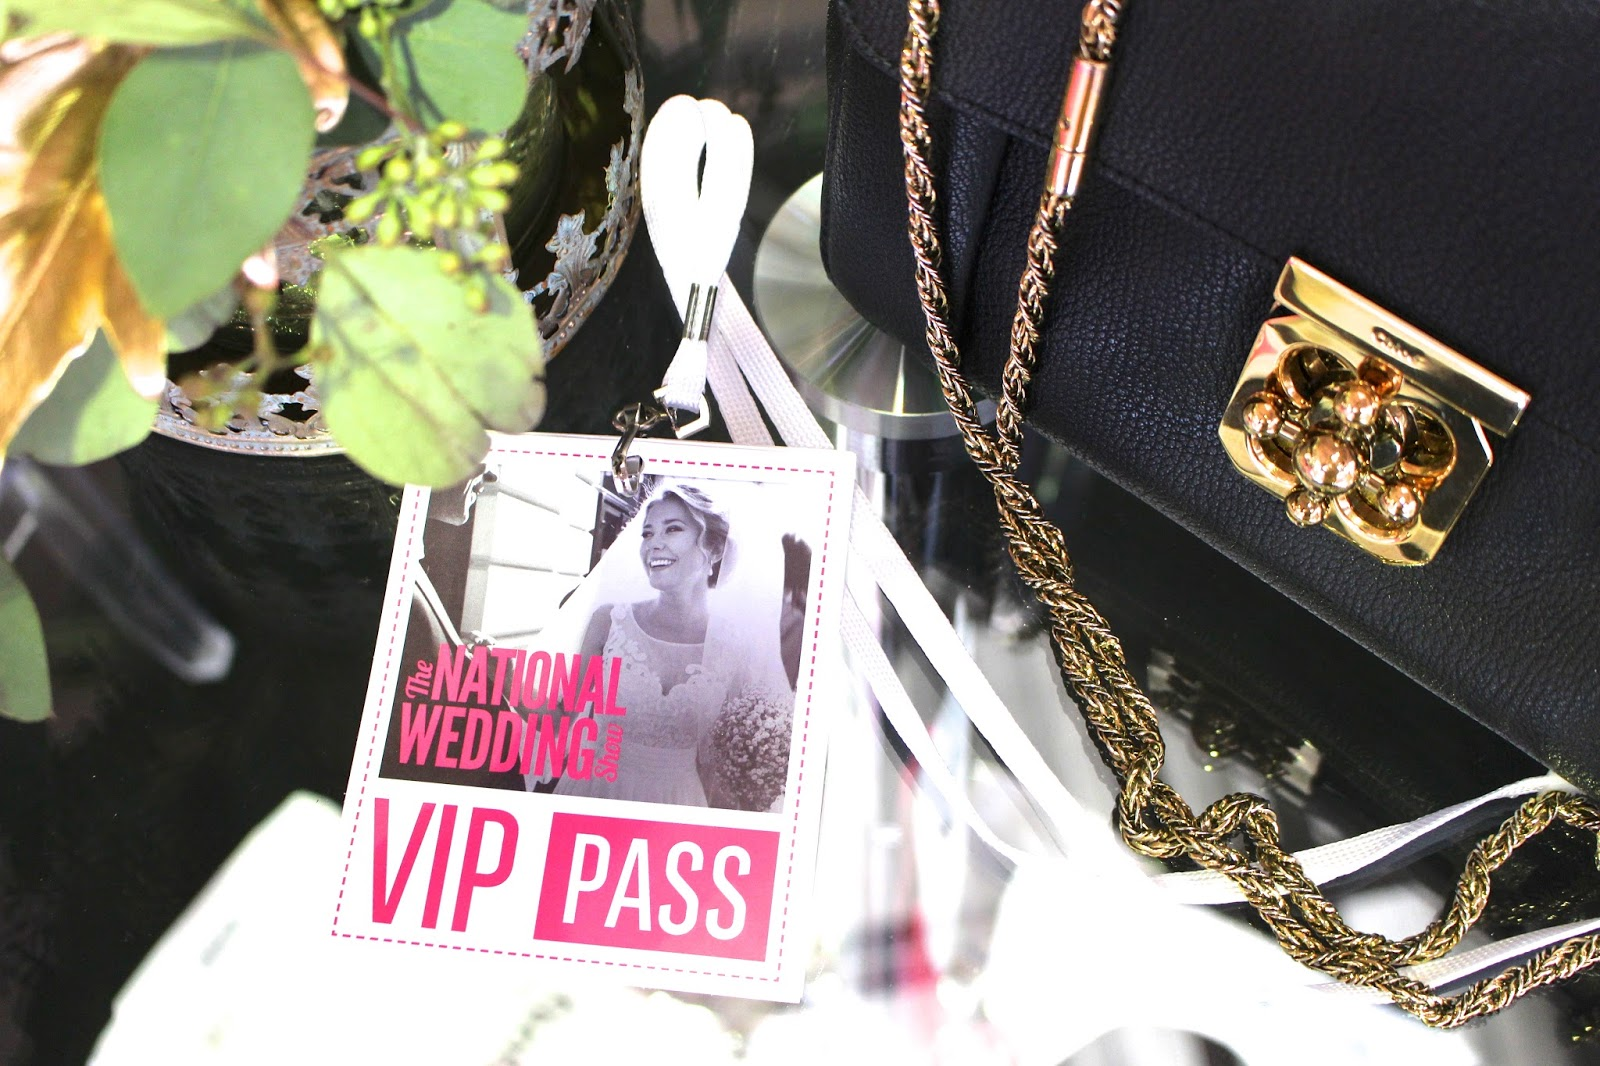 The National Wedding Show 2016 VIP Pass